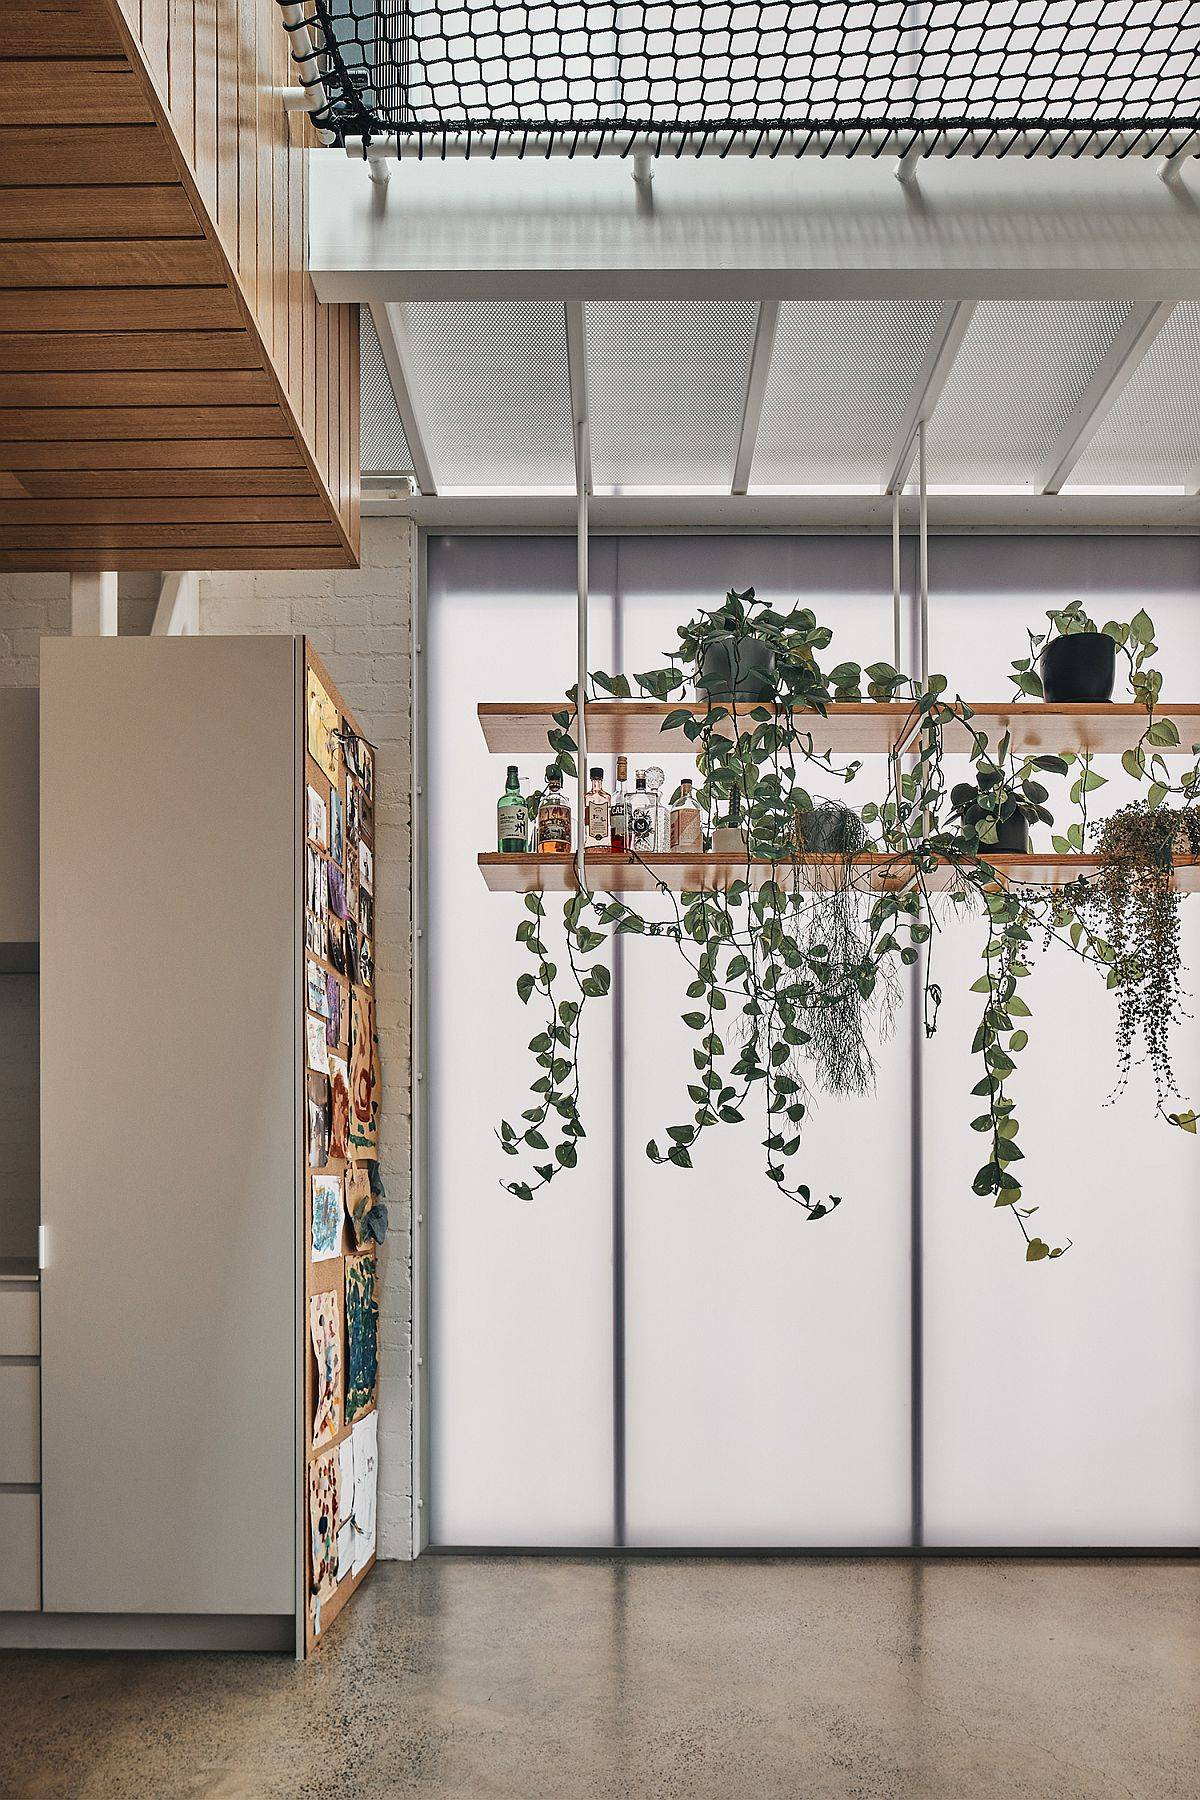 Bespoke hanging wooden shelves in the living room with greenery